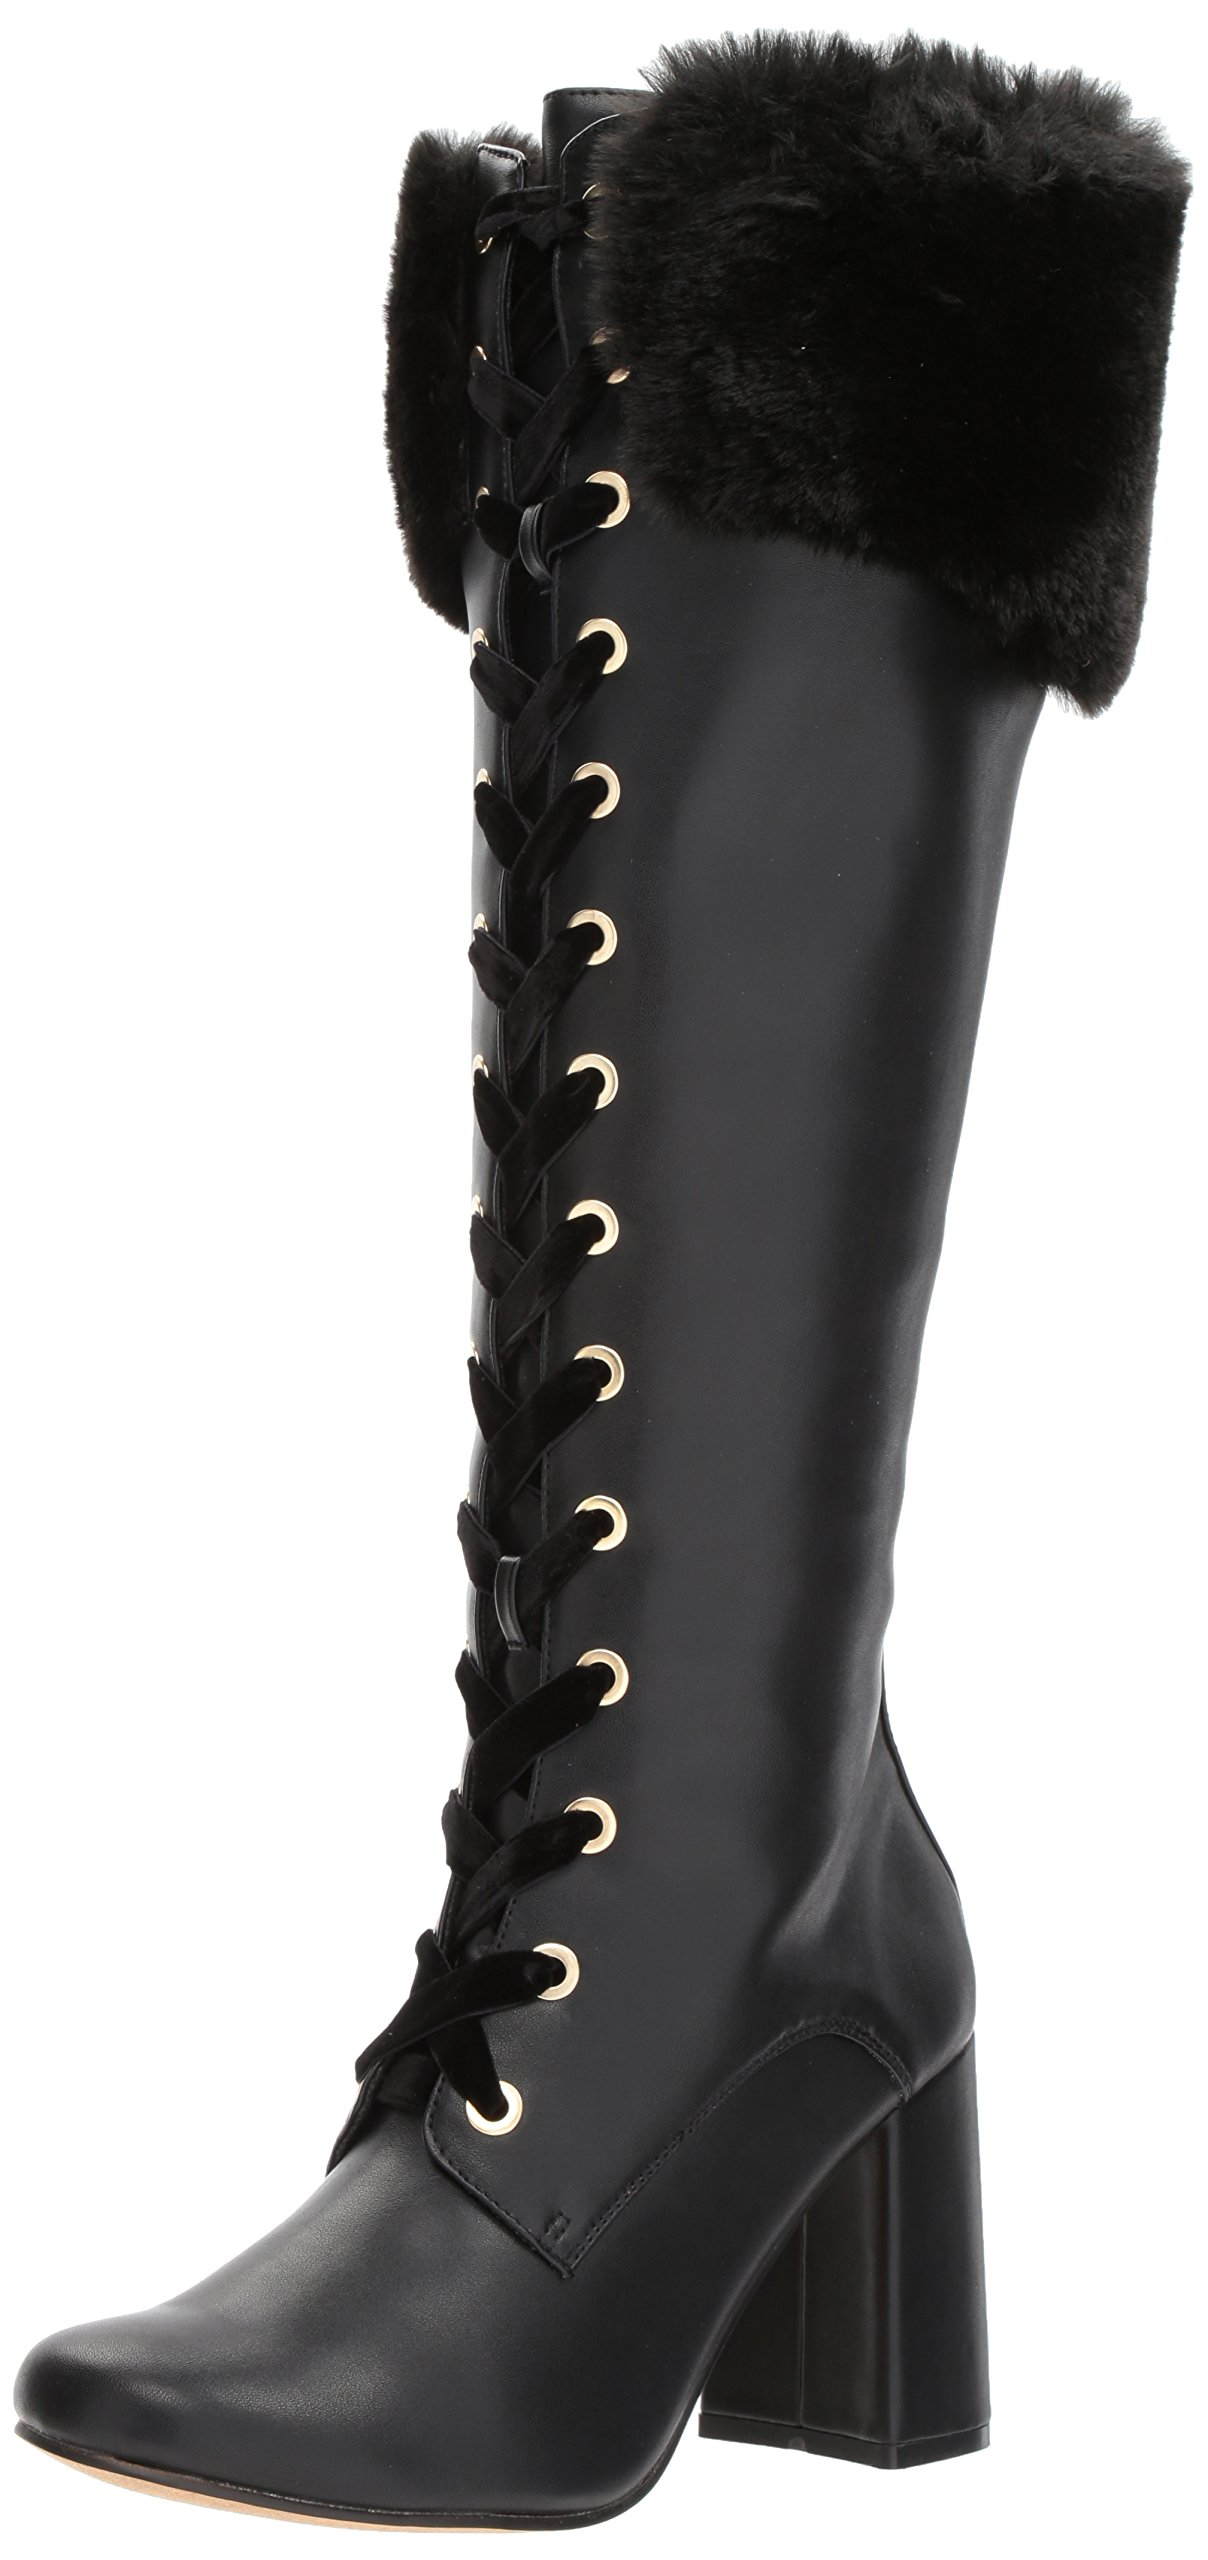 Nanette Lepore Women's Flora Knee High Boot, Black, 9 M US